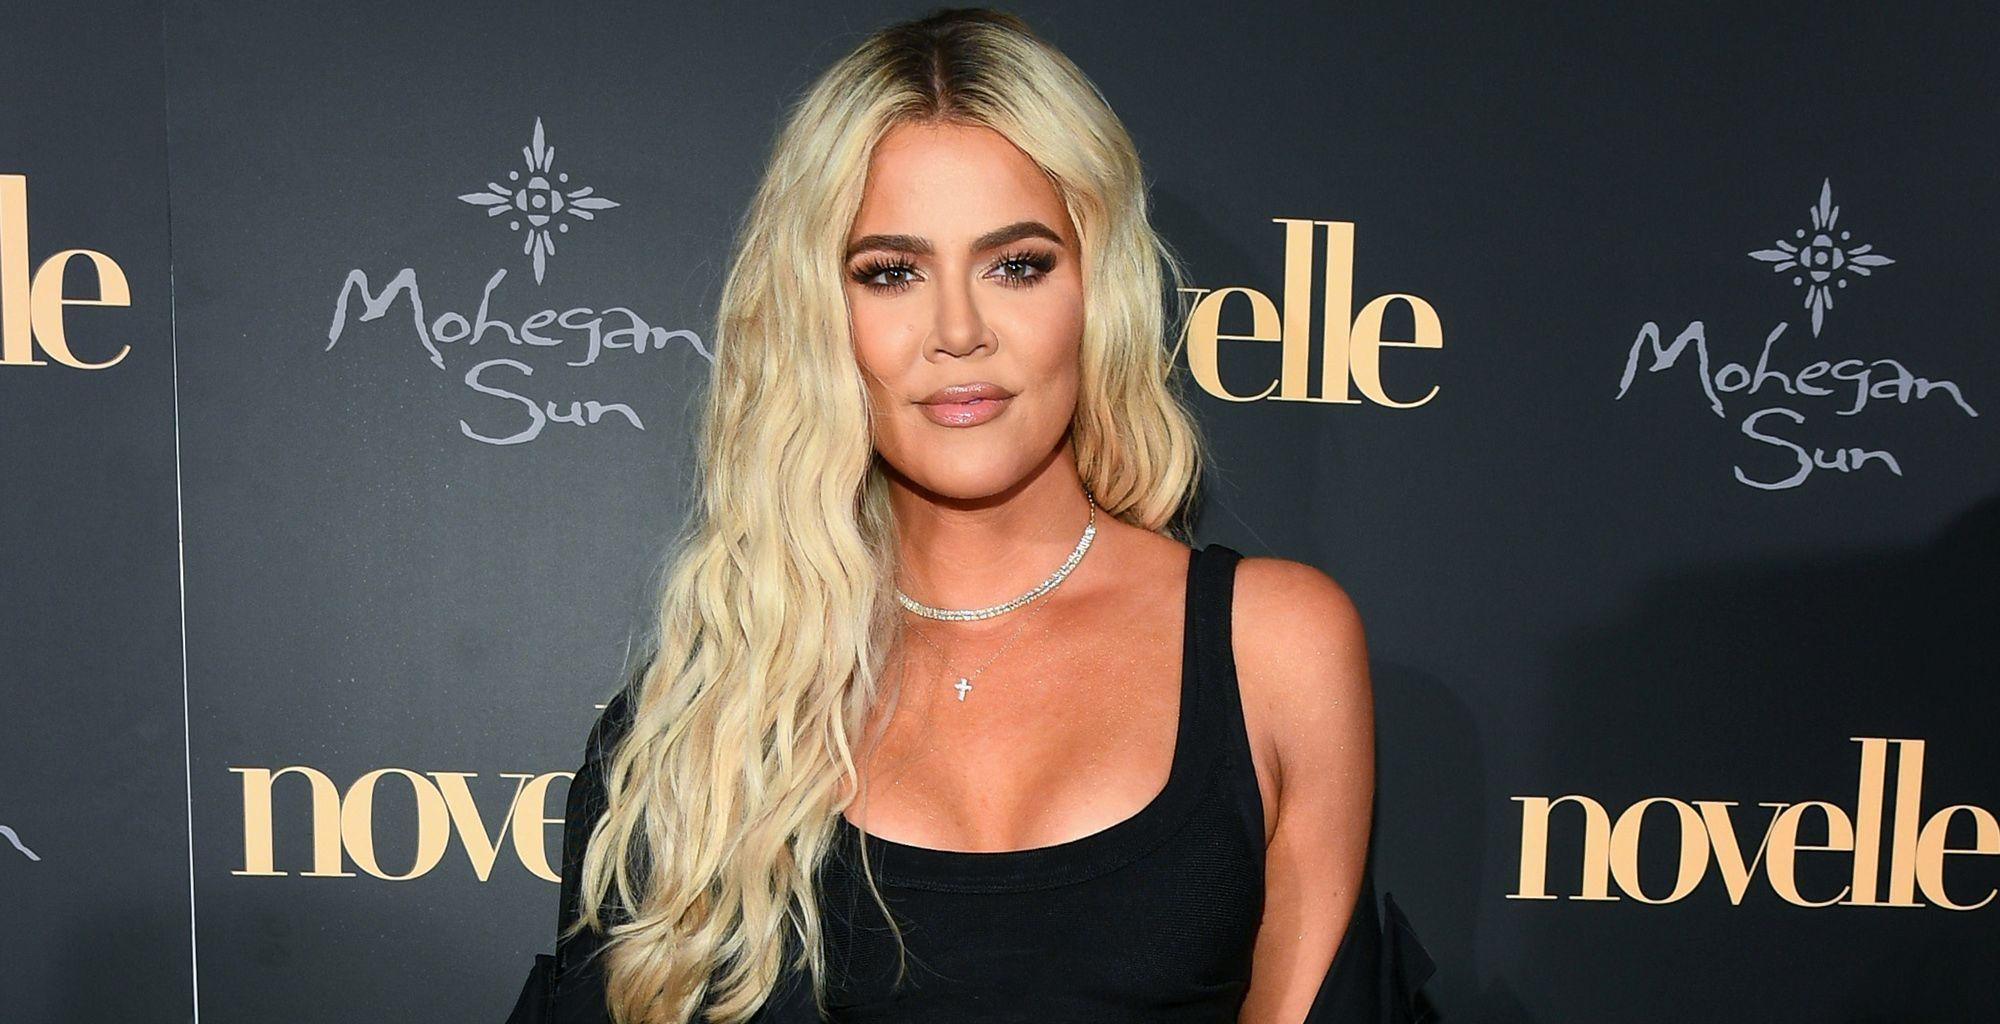 Khloe Kardashian Has Reportedly Been Struggling Amid Tristan's Cheating Drama Playing Out On KUWK